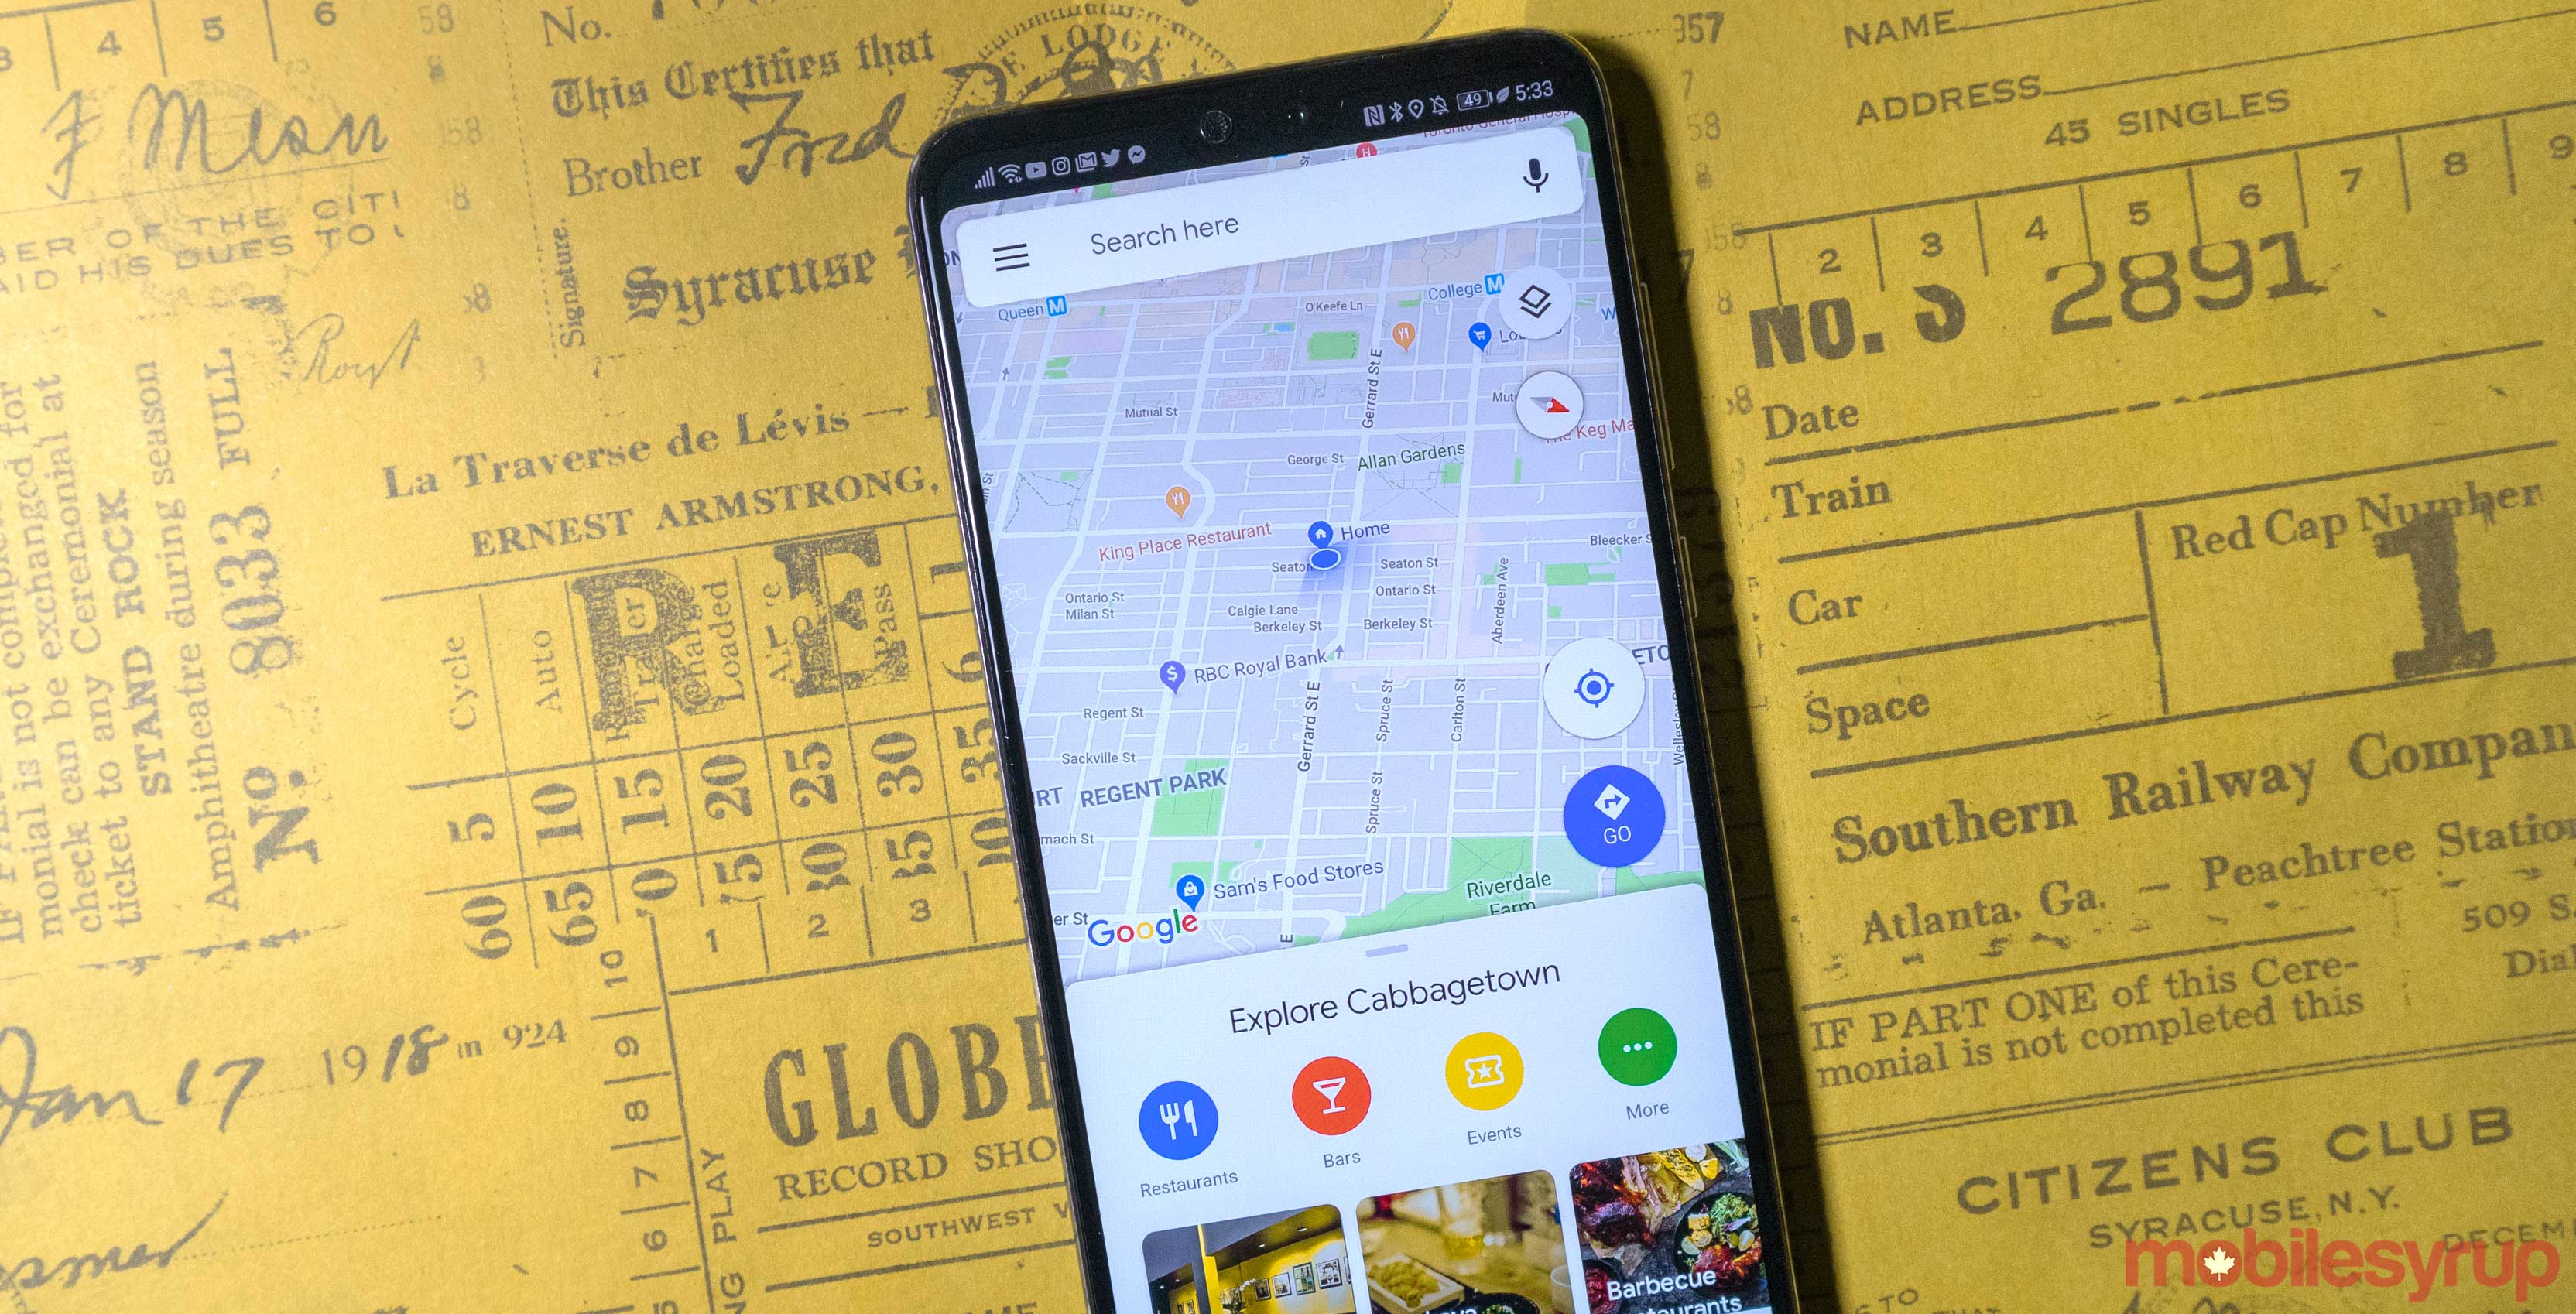 Google Maps now provides more control over personal and ... on googie maps, gppgle maps, bing maps, goolge maps, iphone maps, stanford university maps, search maps, googlr maps, topographic maps, android maps, online maps, msn maps, waze maps, aerial maps, aeronautical maps, amazon fire phone maps, gogole maps, microsoft maps, road map usa states maps, ipad maps,